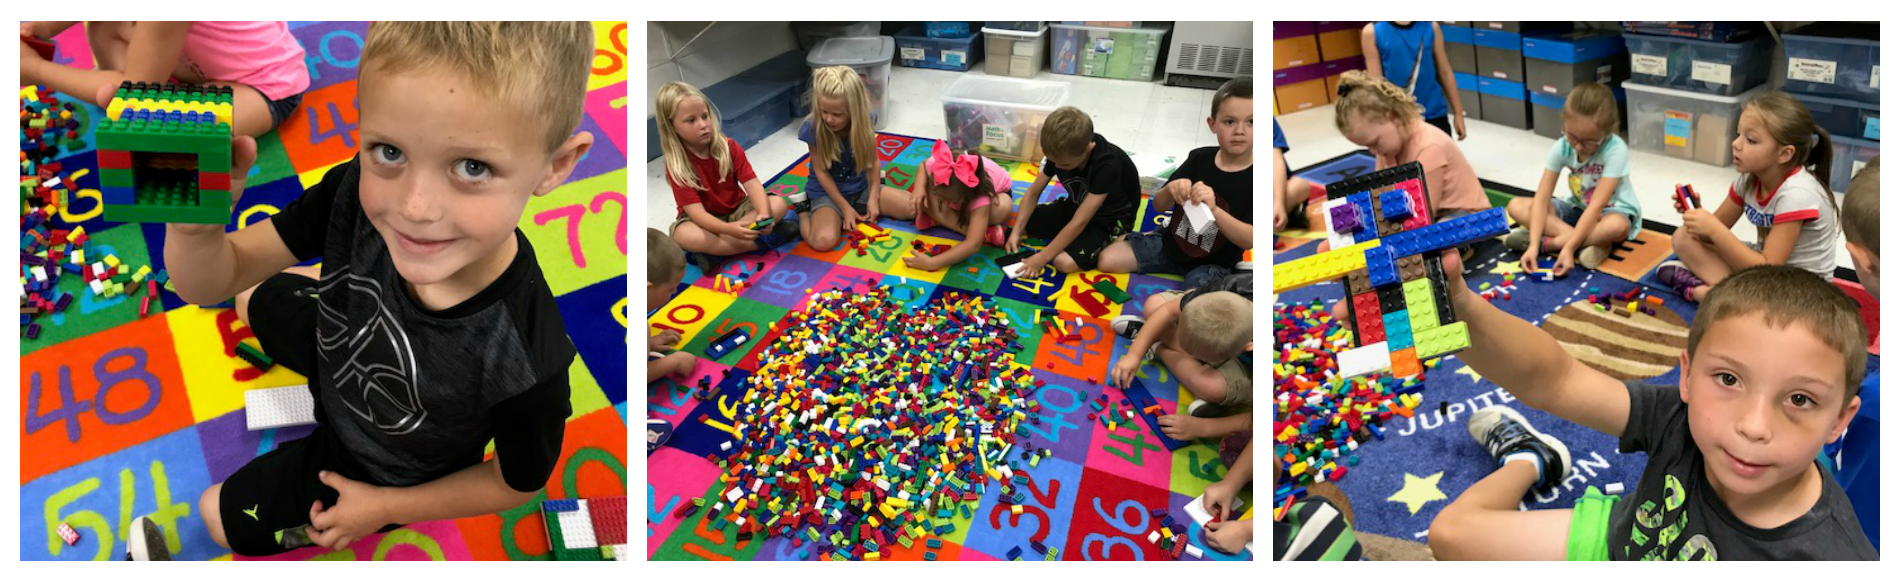 Students in Mrs. Kelly's class at WMES were challenged to build an object with 20 Lego pieces.  Students built garages, robots, sonar fishing apparatus, and bunny rabbits.